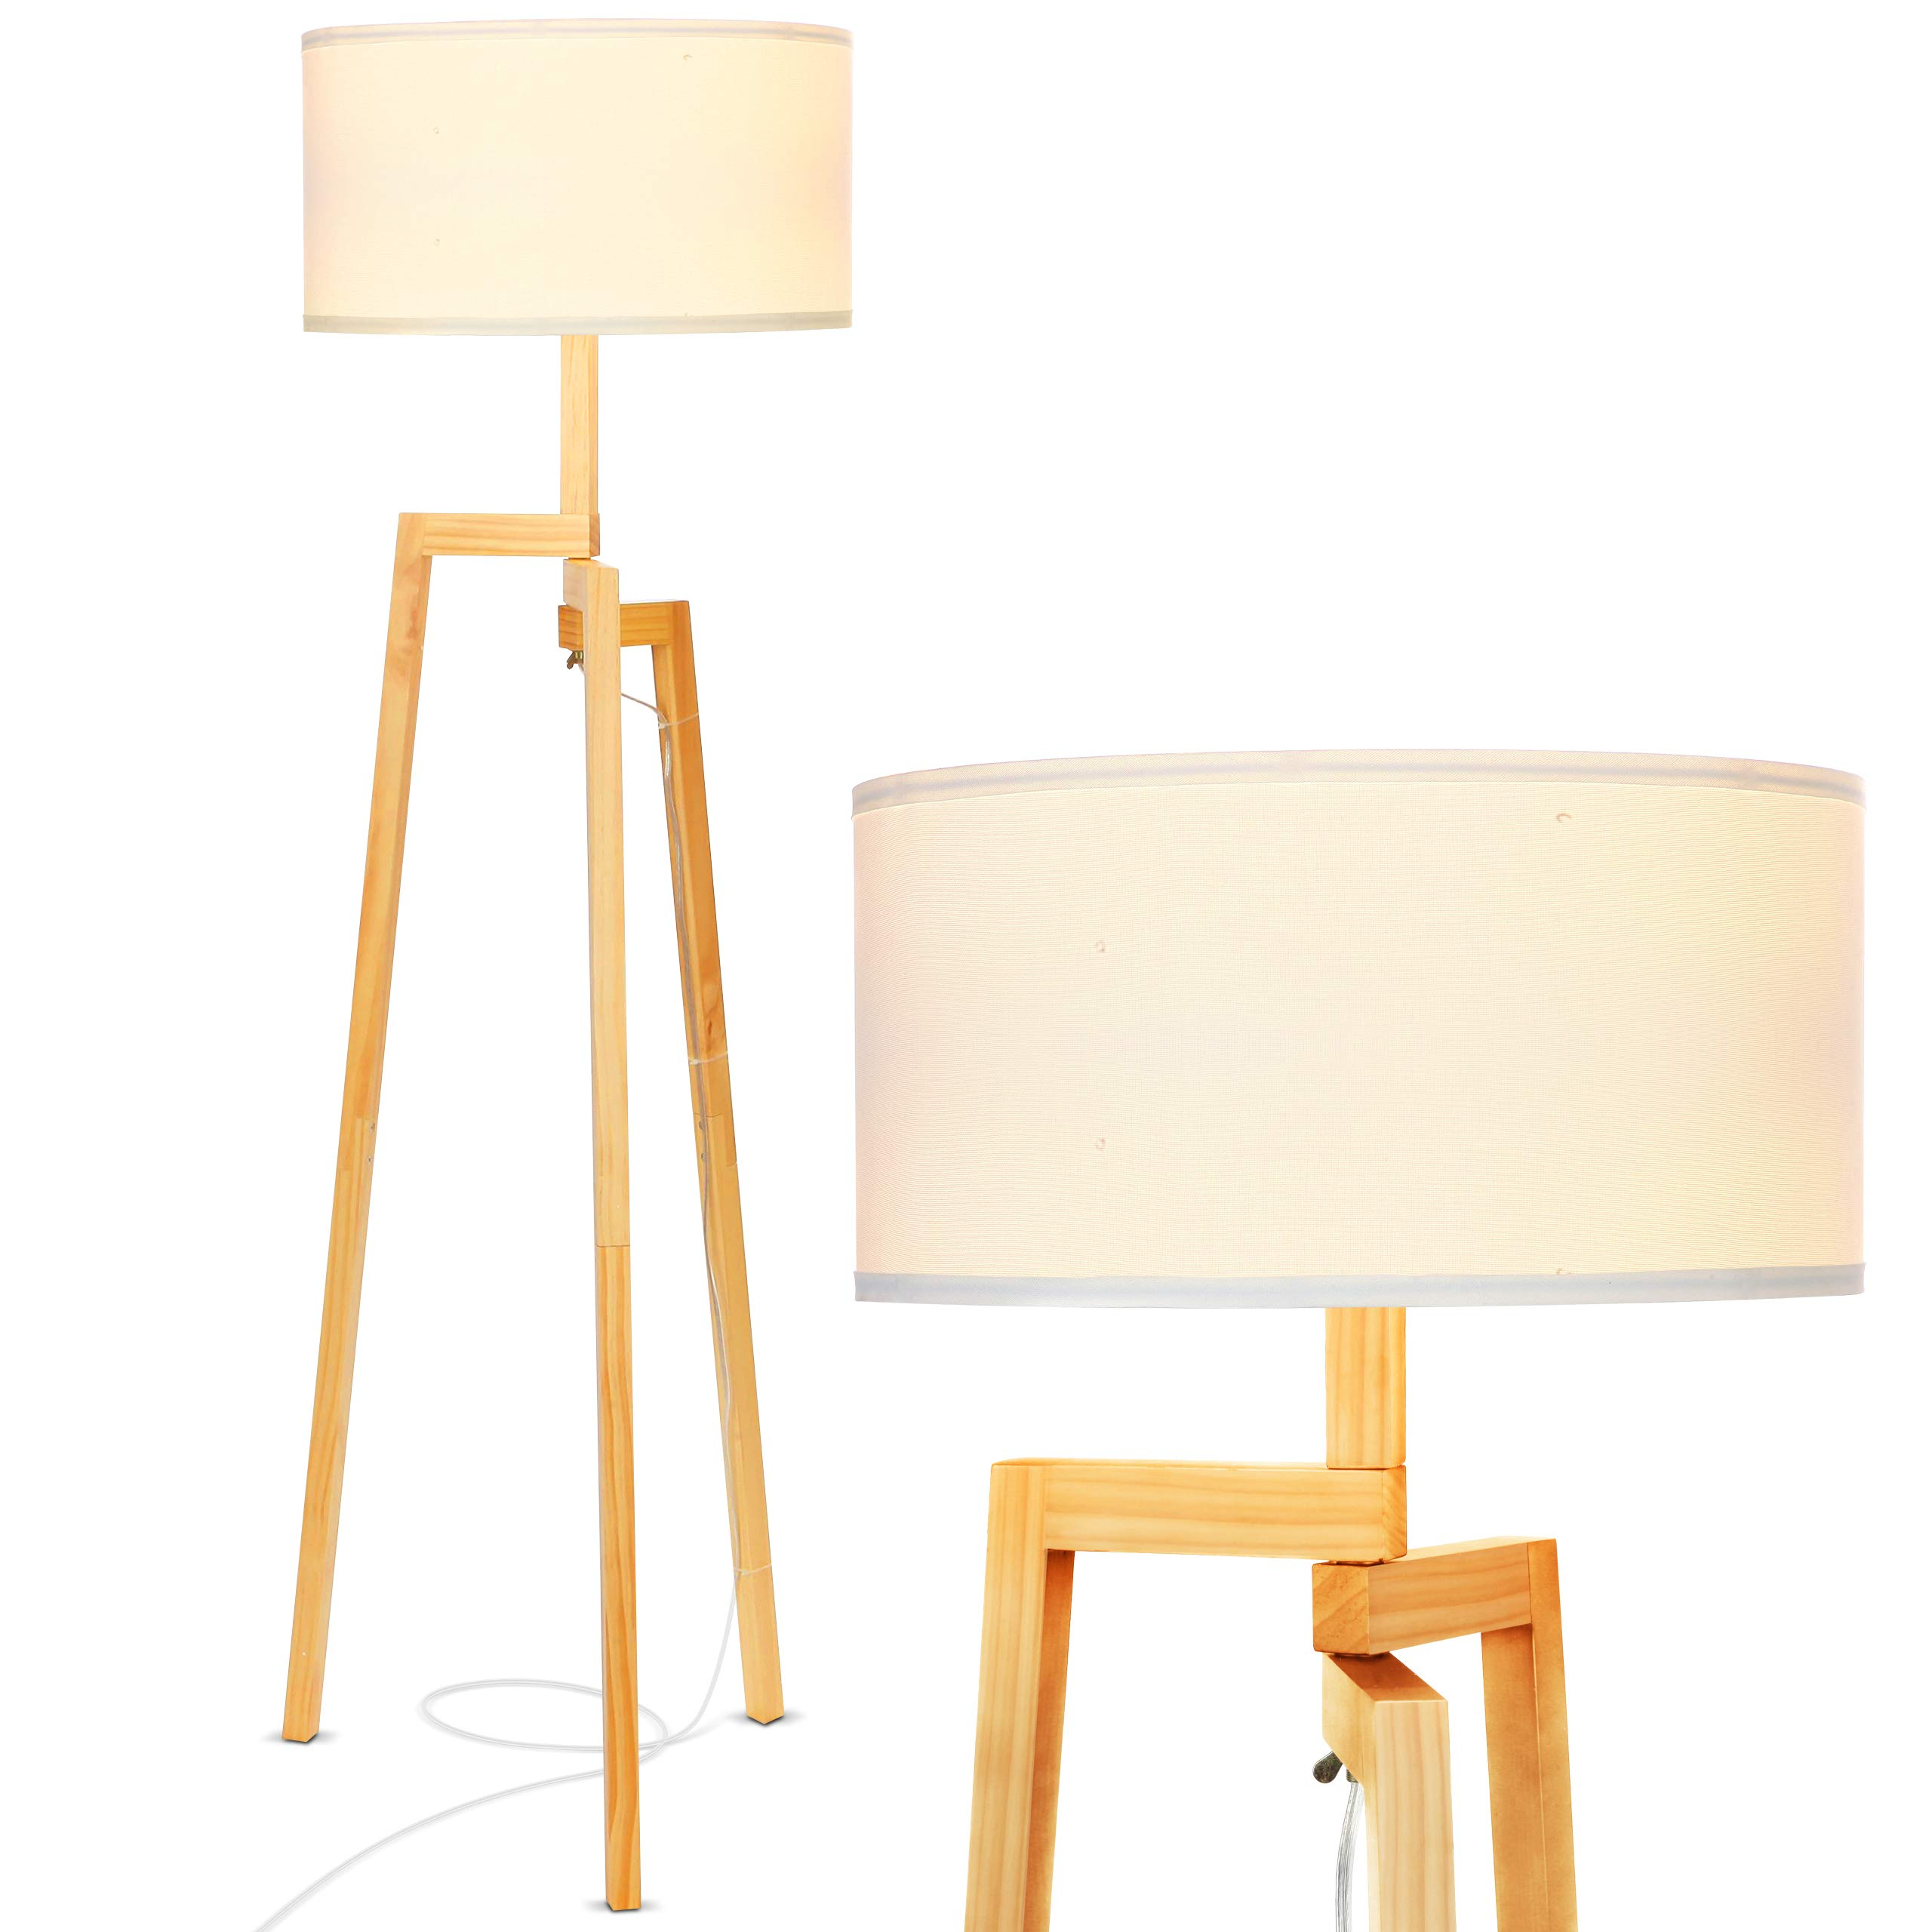 Brightech New Mia LED Tripod Floor Lamp- Modern Design Wood Mid Century Modern Light for Contemporary Living Rooms- Rustic, Tall Standing Lamp for Bedroom, Office- White Shade by Brightech